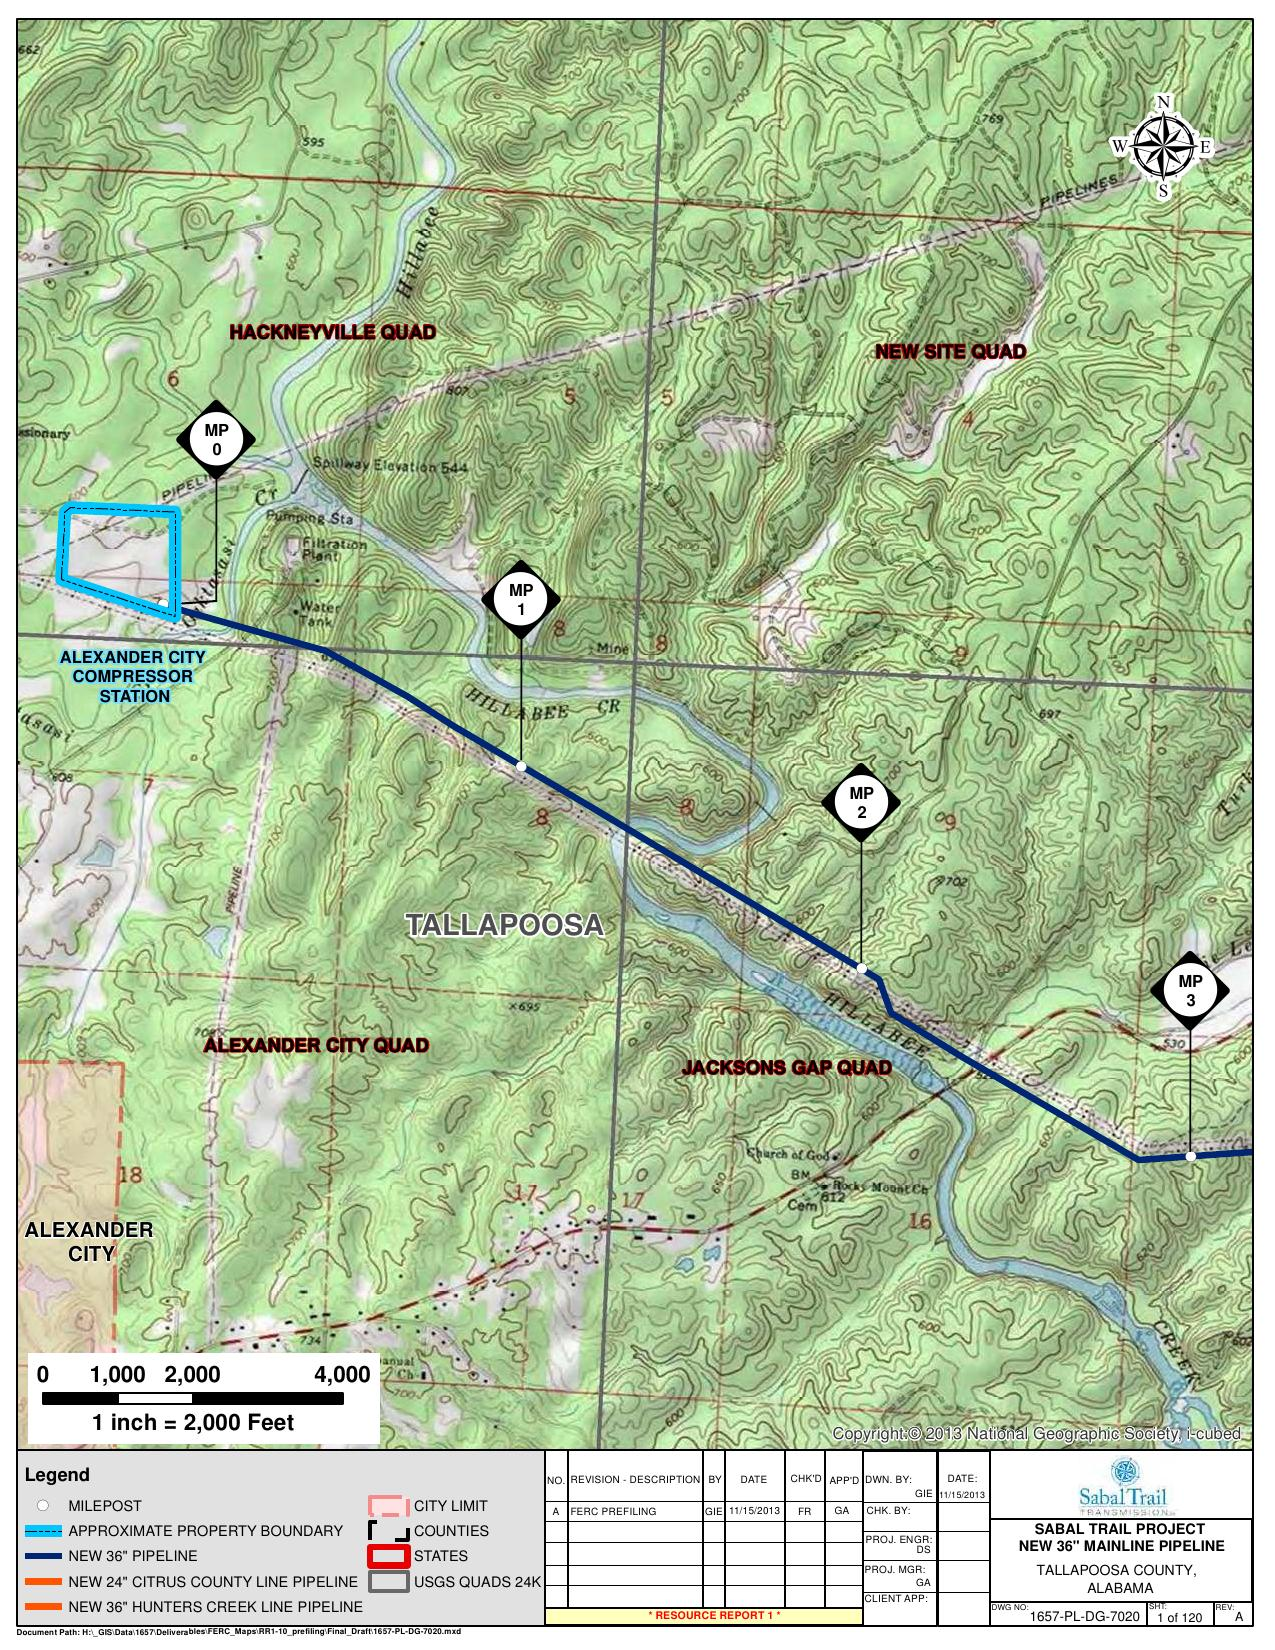 Alexander City Quad, Tallapoosa County, Alabama, in General Project Description, by SpectraBusters, for FERC Docket No. PF14-1-000, 15 November 2013, converted by SpectraBusters